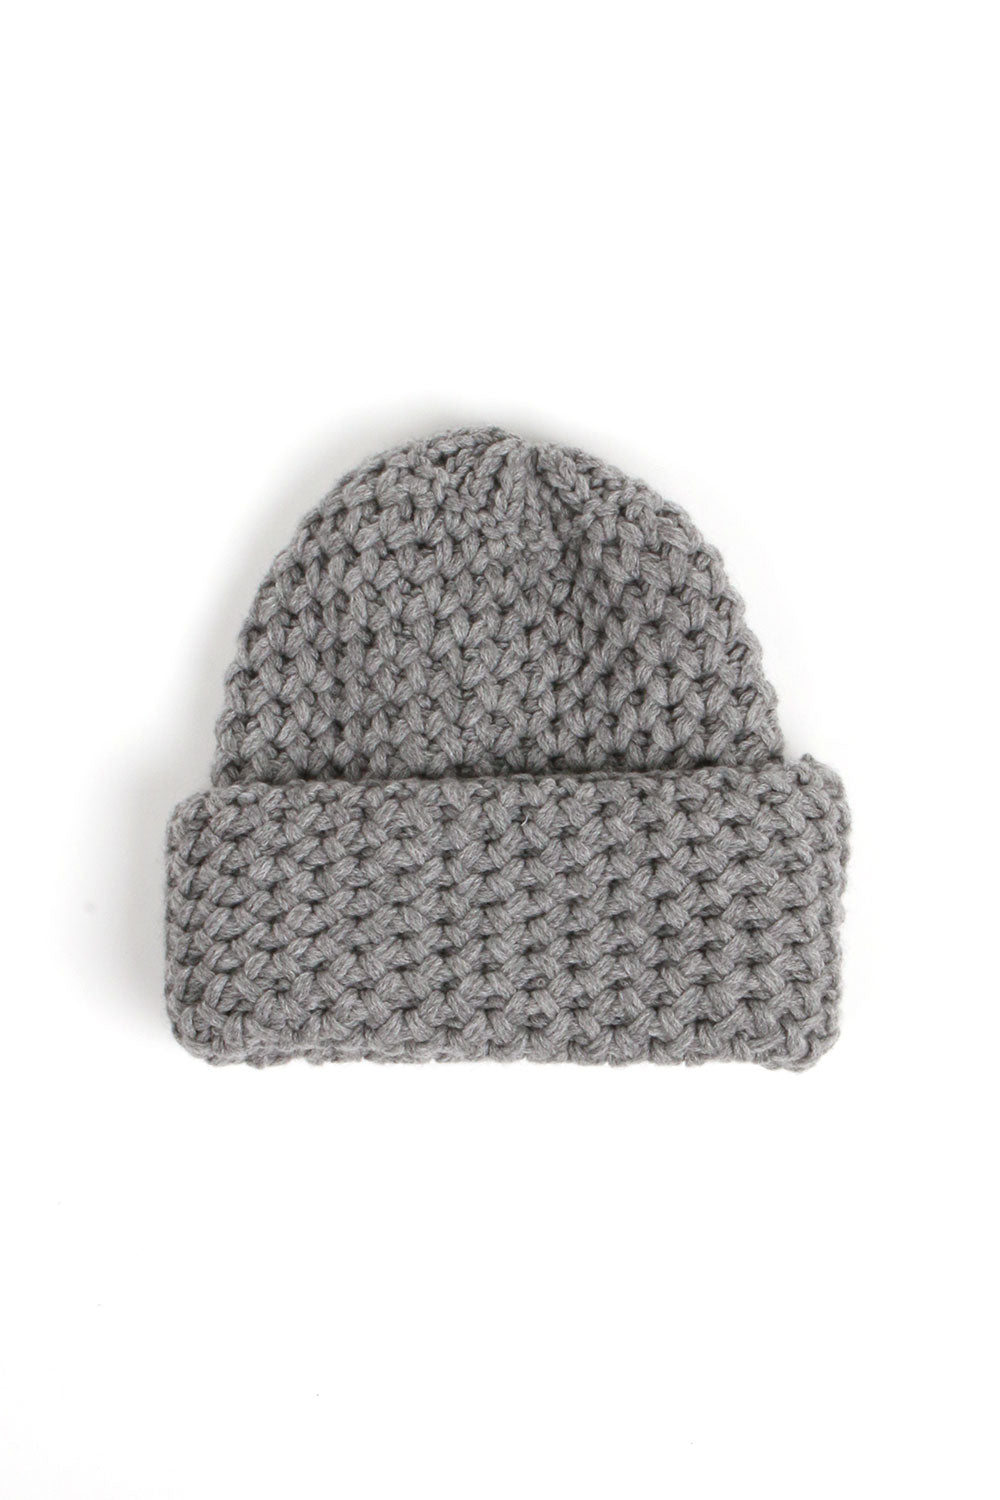 Knit Grey Hat